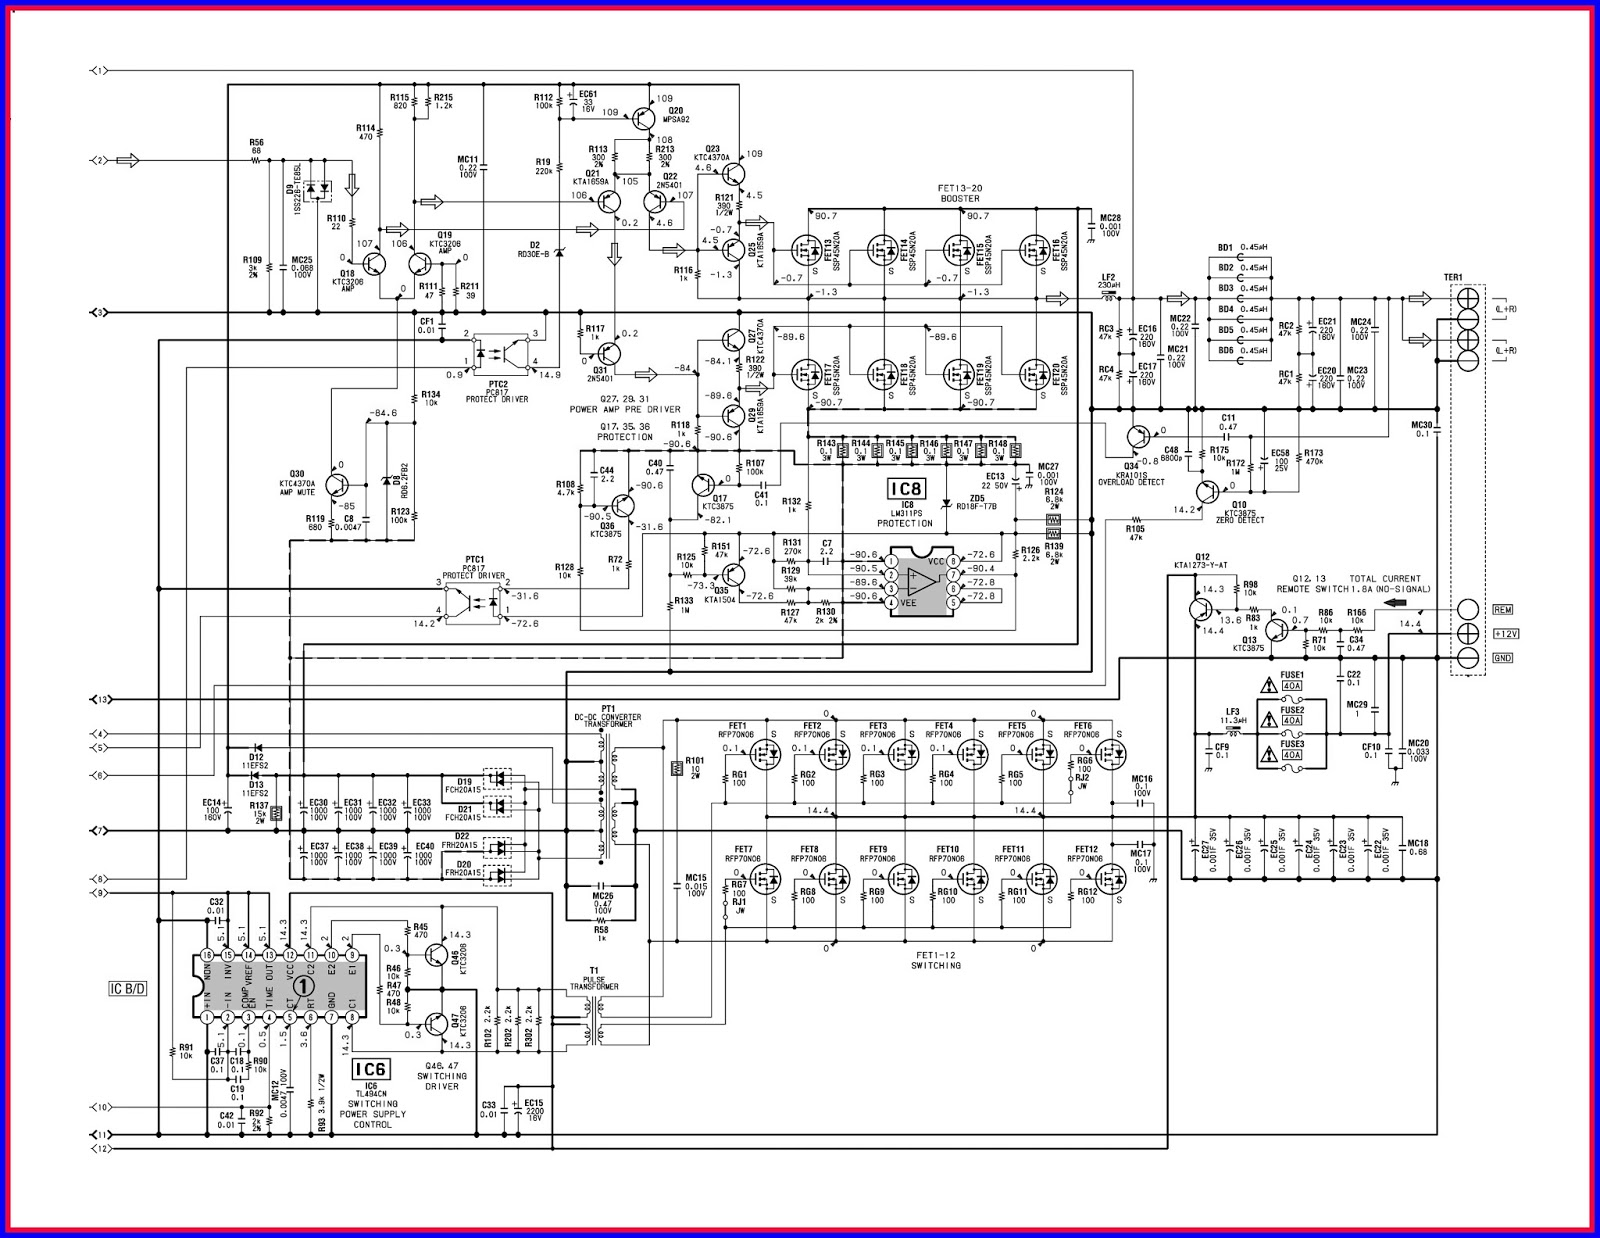 Power Amp Circuit Diagrams Wiring Library 100w Subwoofer Amplifier Audio Diagram Electronic Equipment Repair Centre Sony Xplod Xm D1000p5 Car